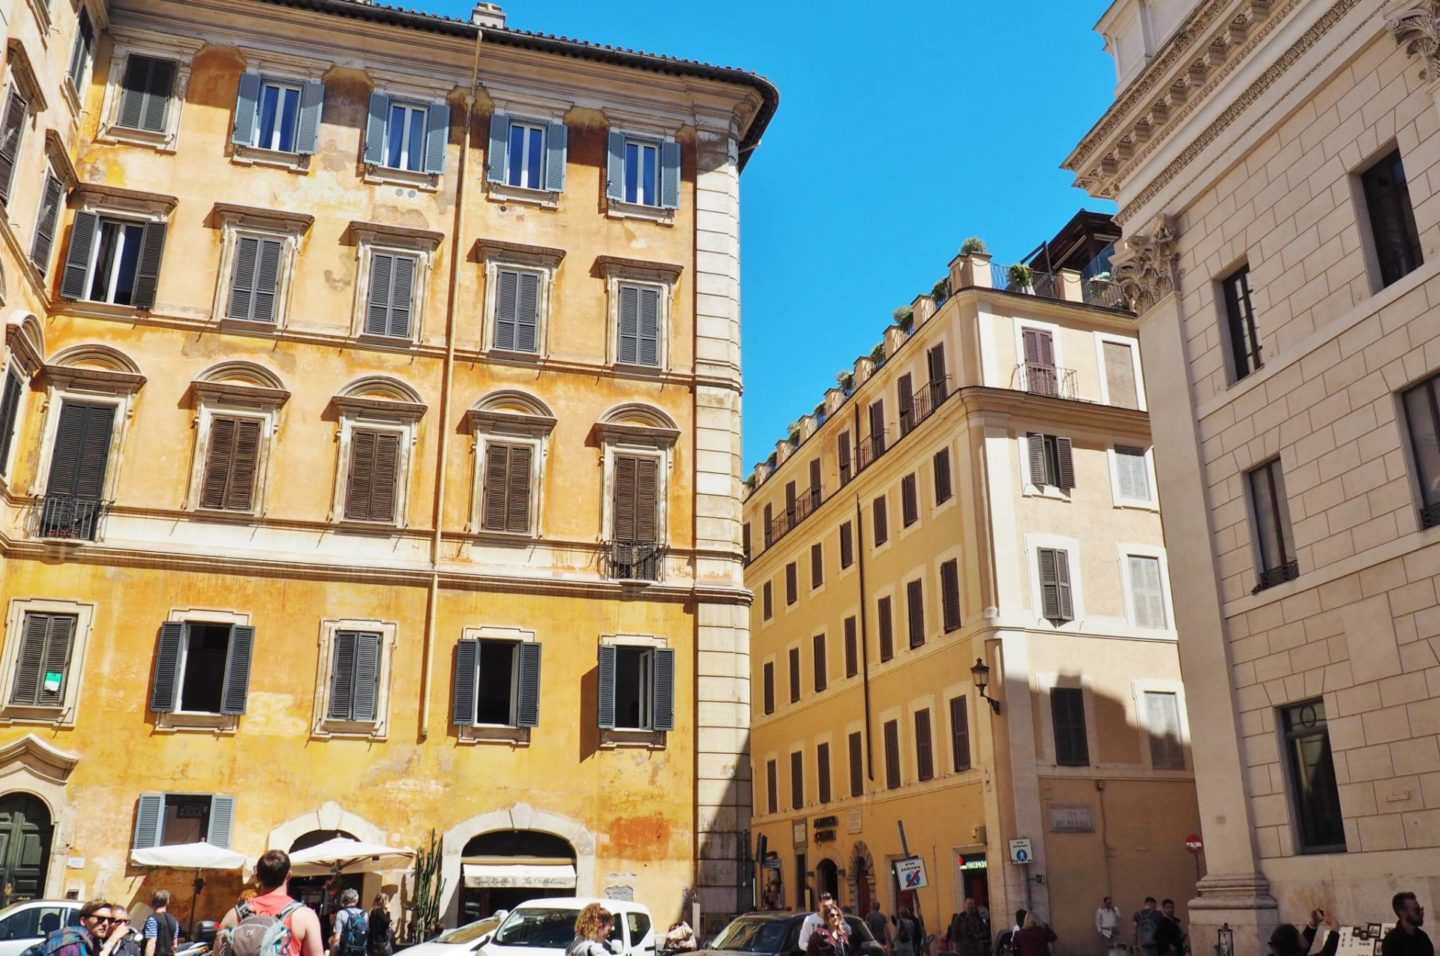 Emma Victoria Stokes Rome Holiday Building